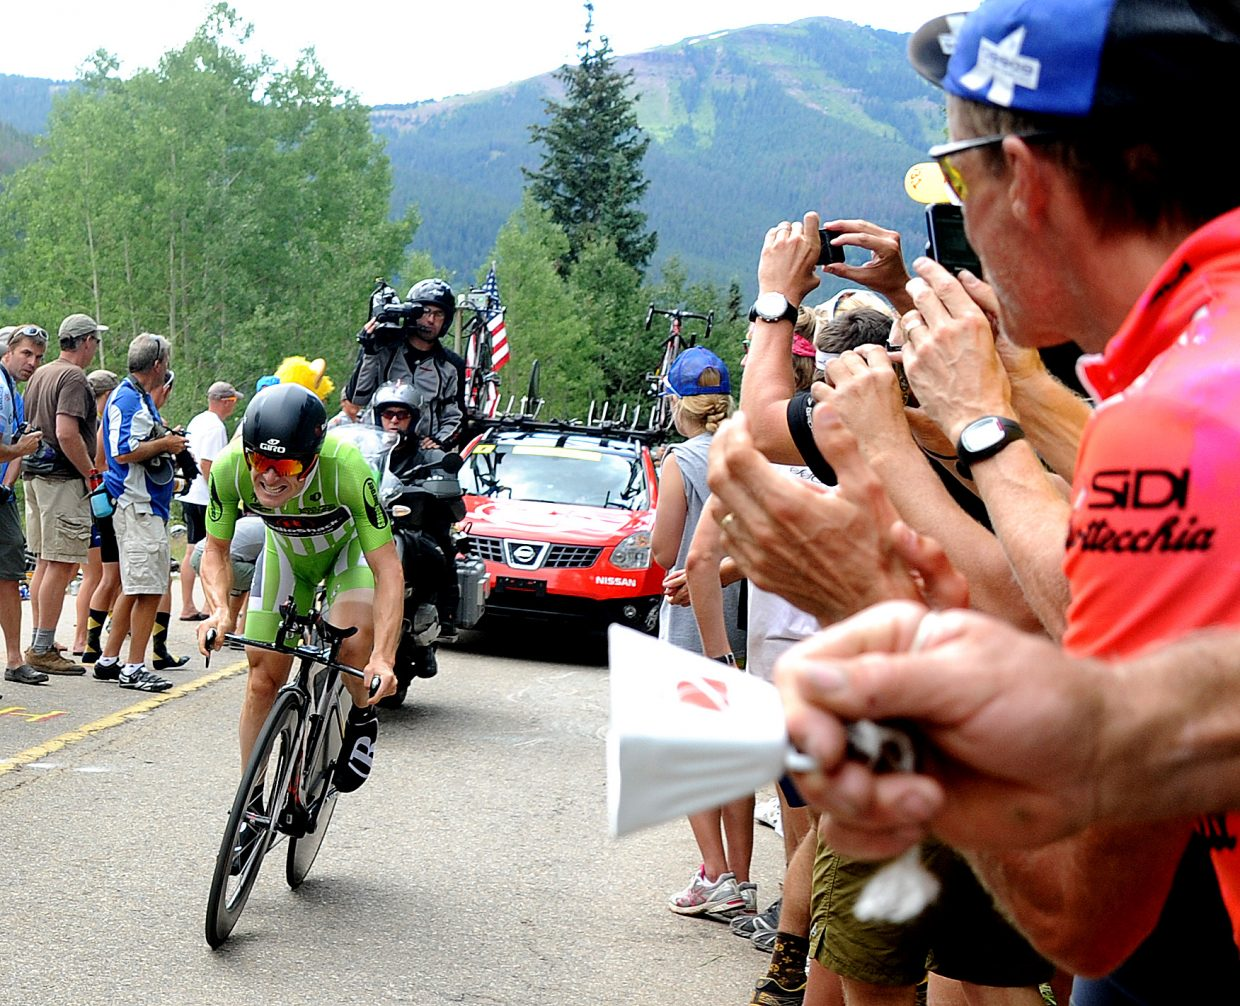 Levi Leipheimer charges through the crowd toward the finish line of the third stage of the USA Pro Cycling Challenge in Vail on Thursday. Leipheimer, who led the entire field earlier in the race, recaptured the yellow jersey with his victory in the day's time trail.